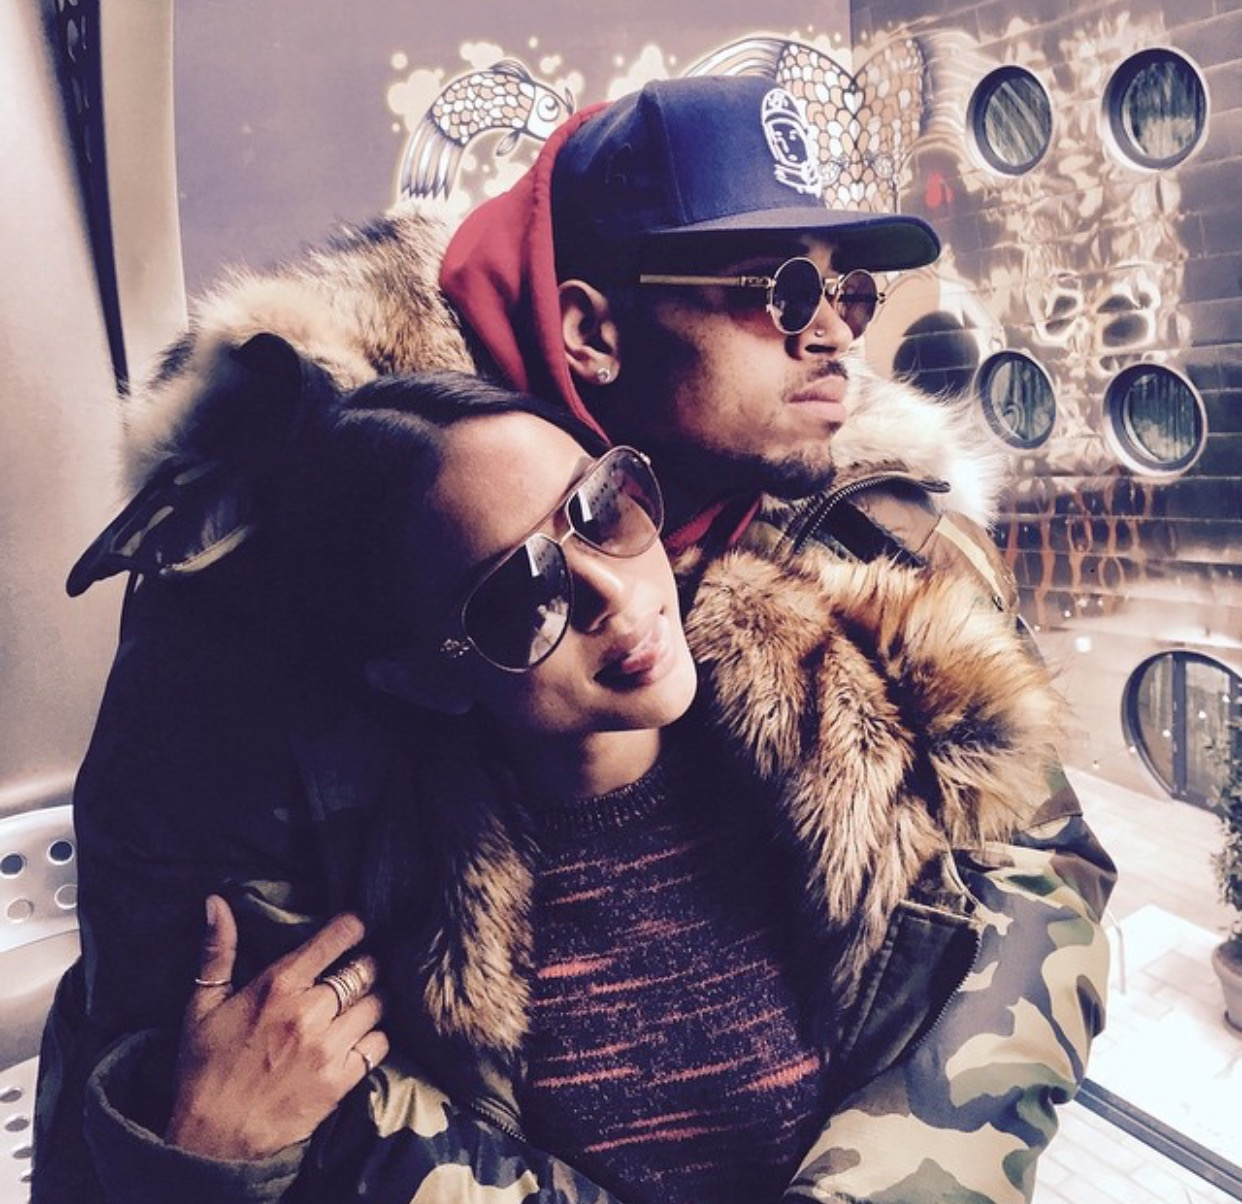 Yikes! Chris Brown Lashes Out Over Baby Rumors